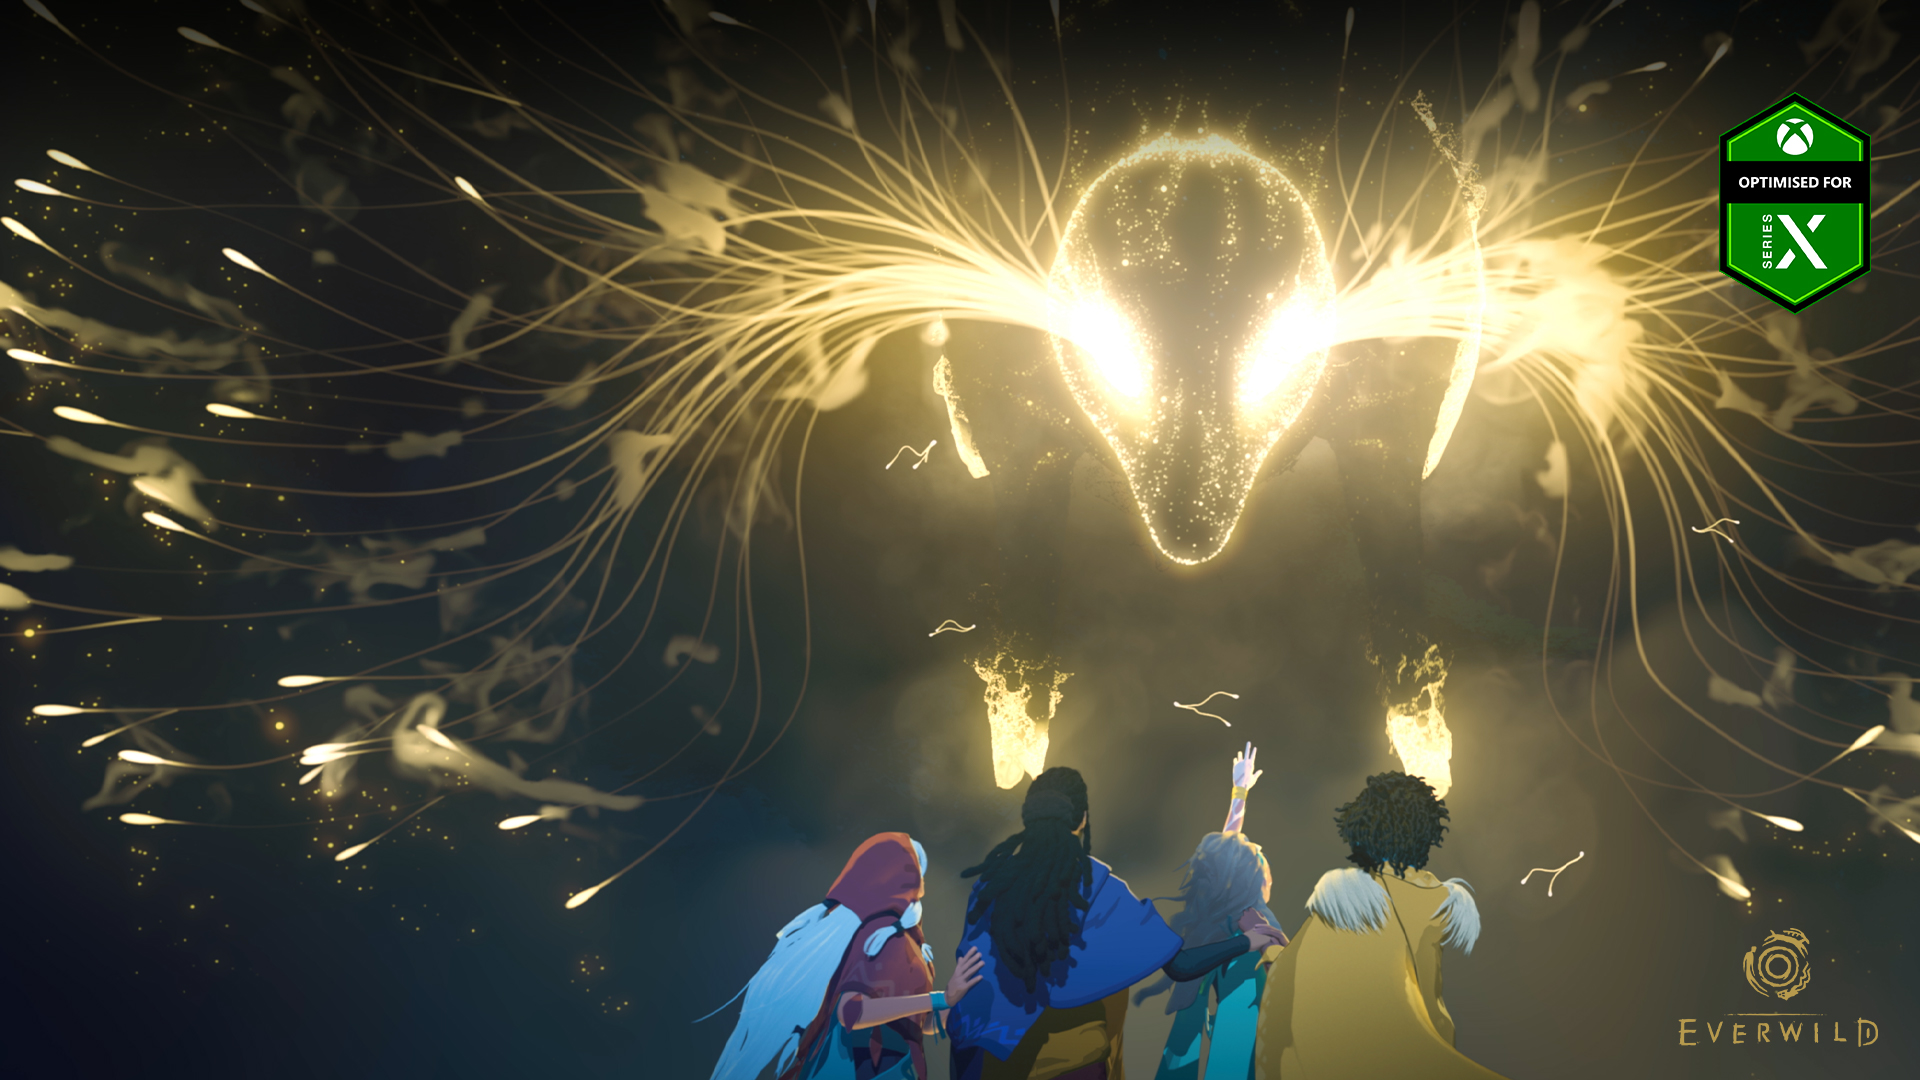 Optimised for Series X, Everwild, a group of characters stand under a deer head made of light.